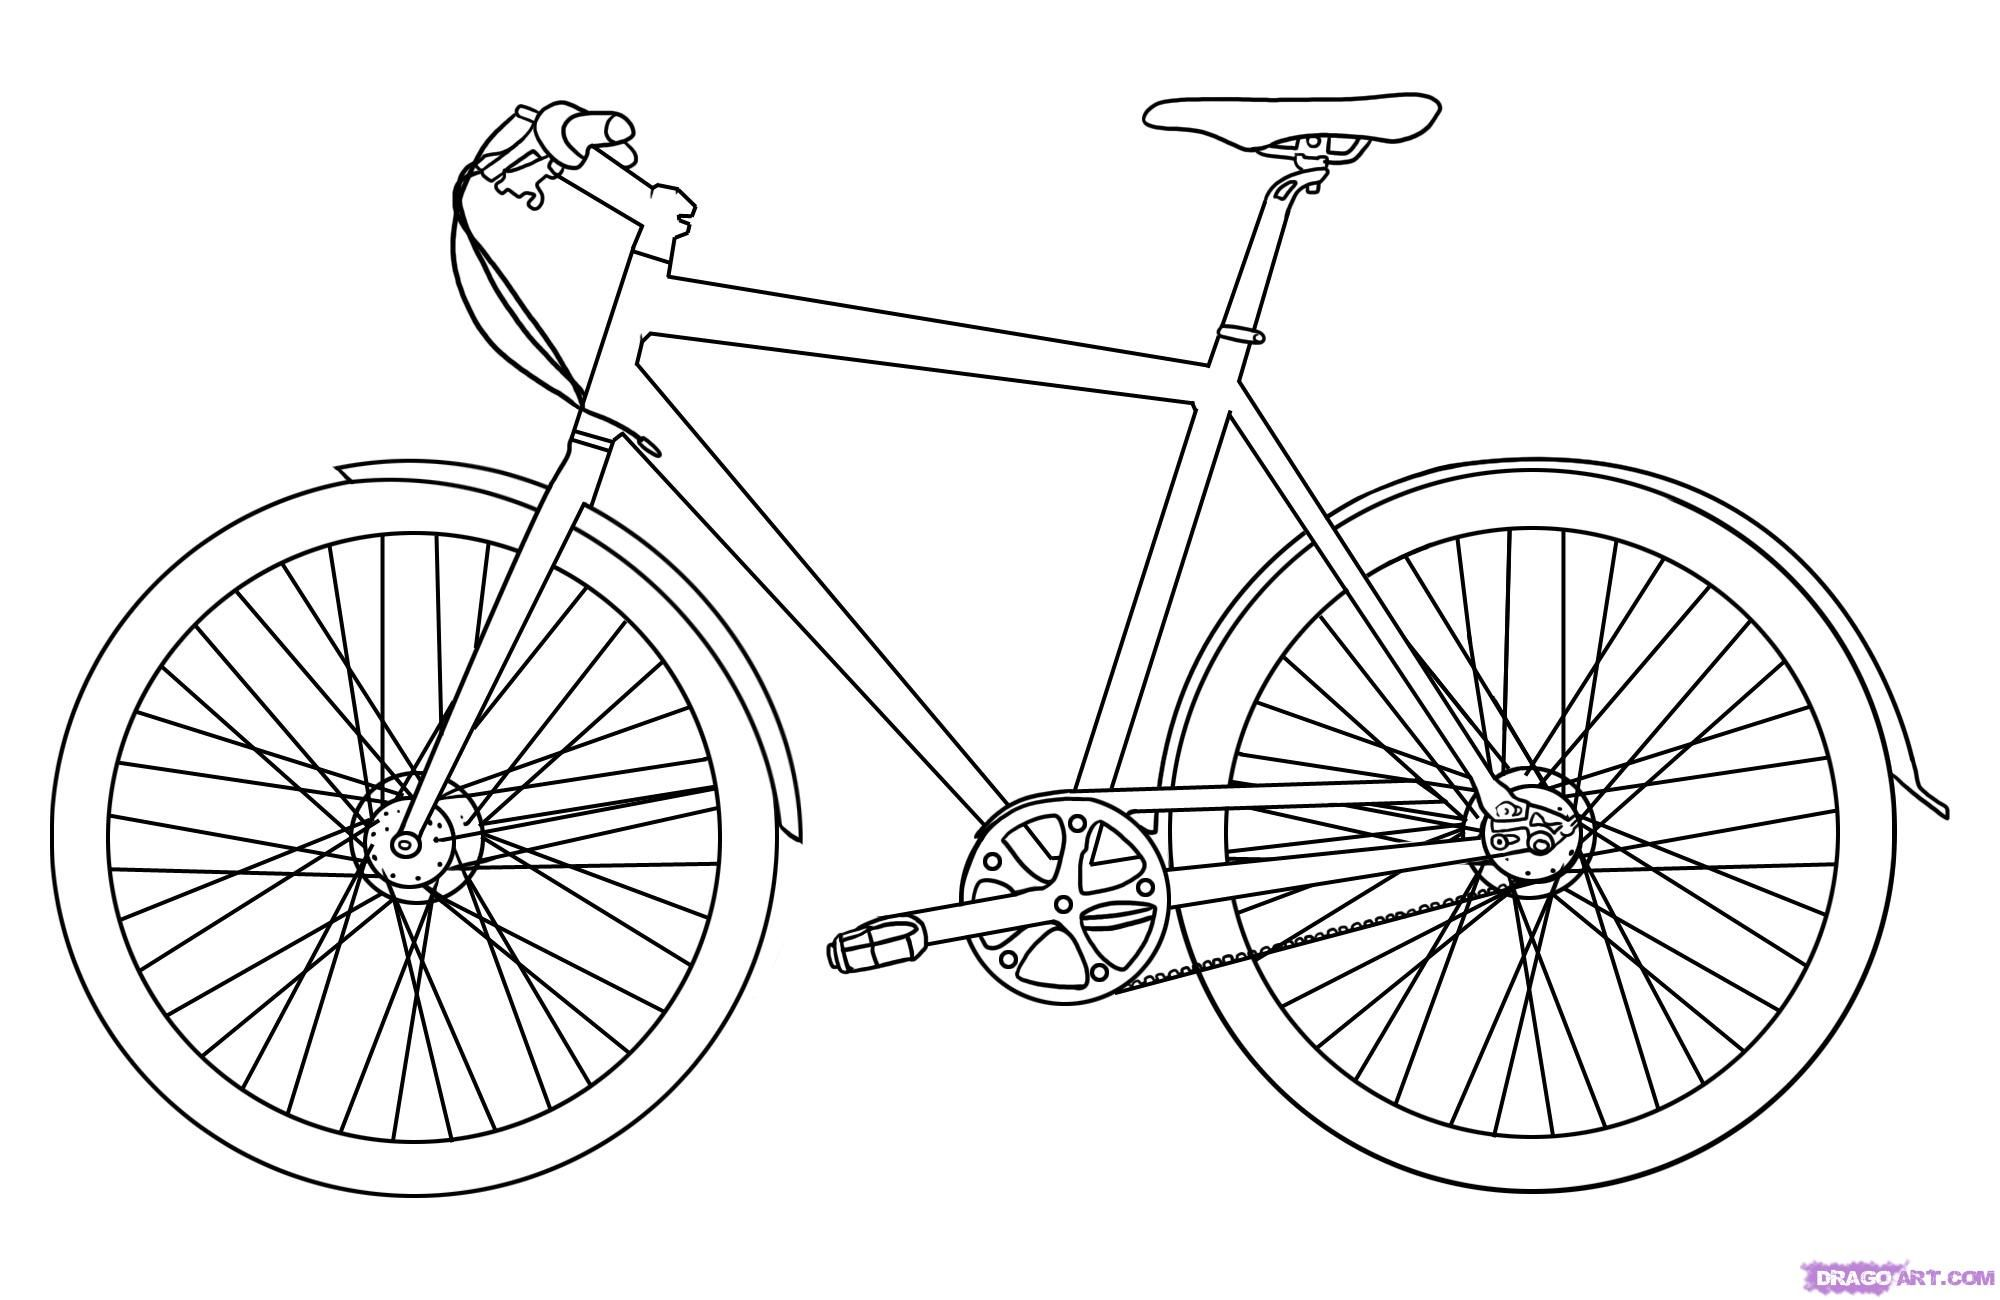 how to draw a bike step by step how to draw a bicycle extract from let39s make some great step to step by how bike a draw